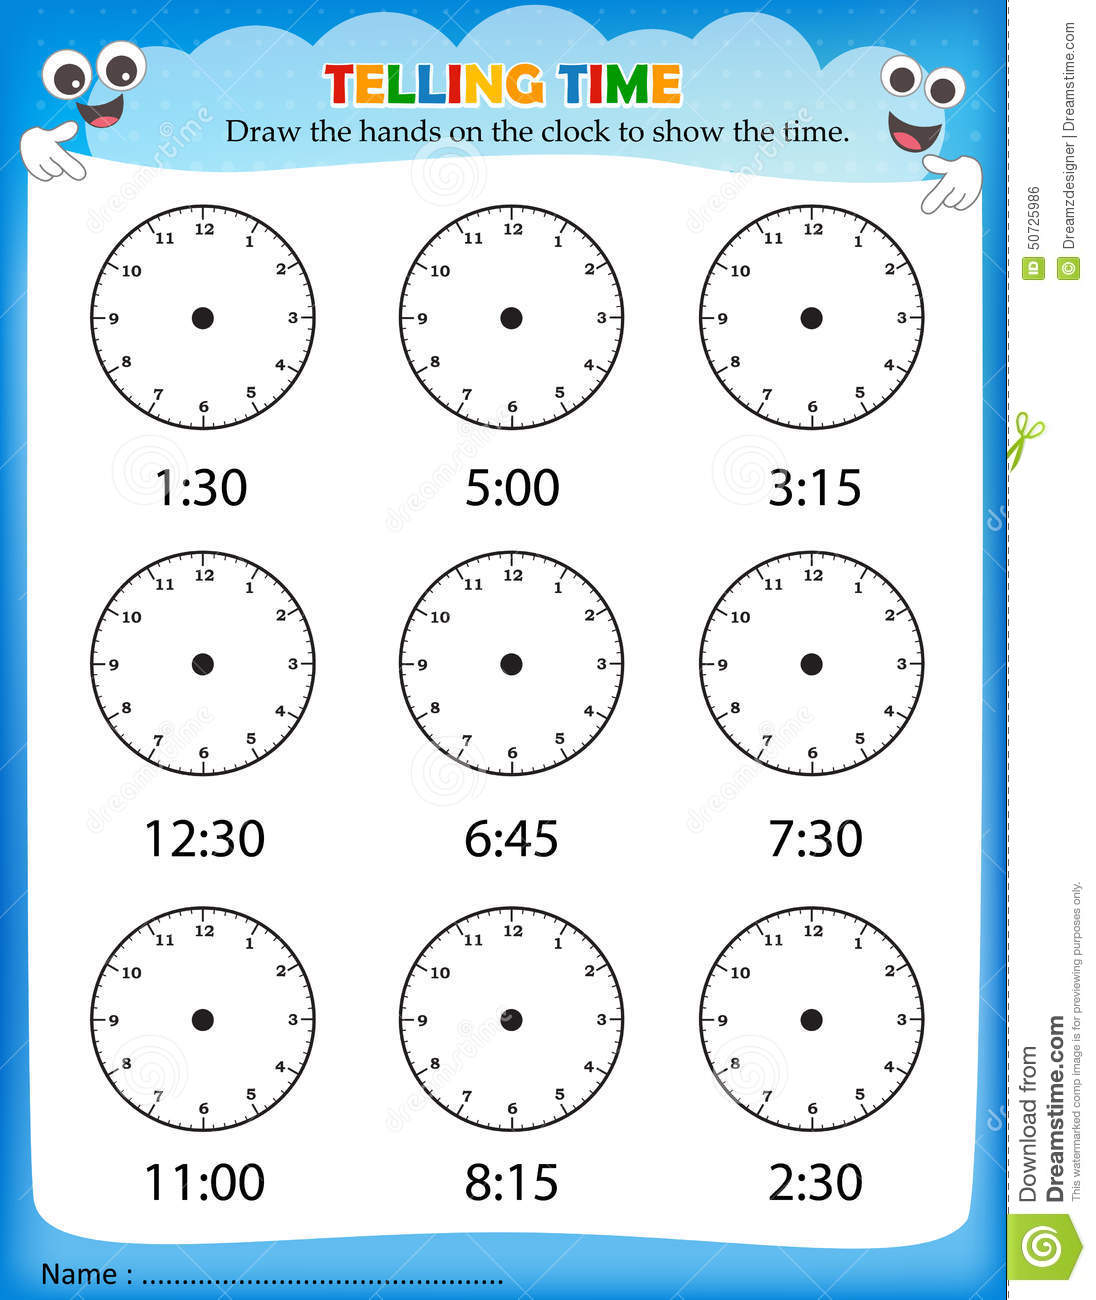 Telling time worksheet for pre school kids to identify the time. Clock ...